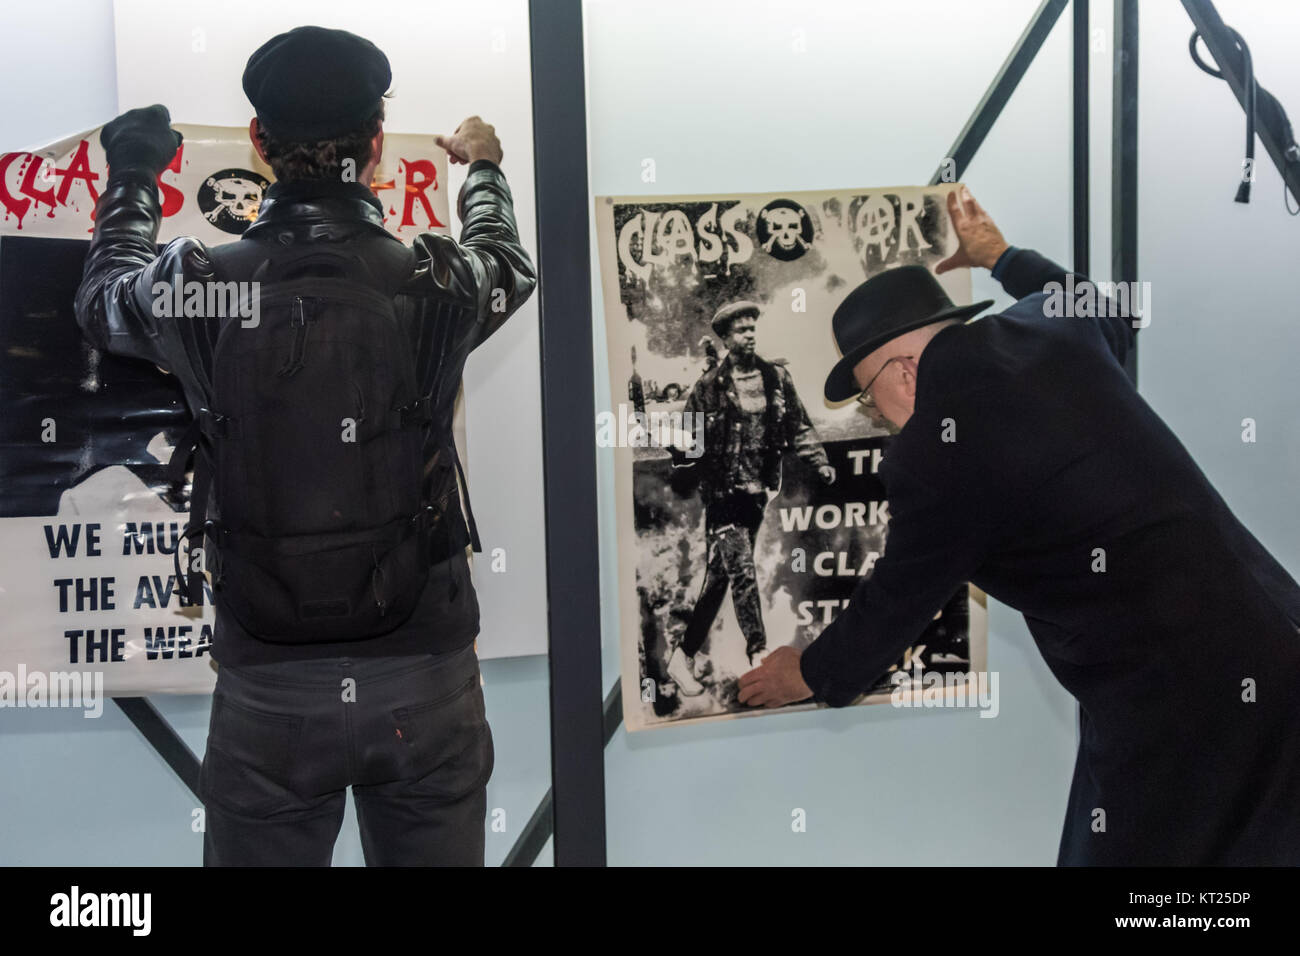 Ian Bone and Simon Elmer put up Class War's posters with Blutak on the front of a currently unused display area - Stock Image